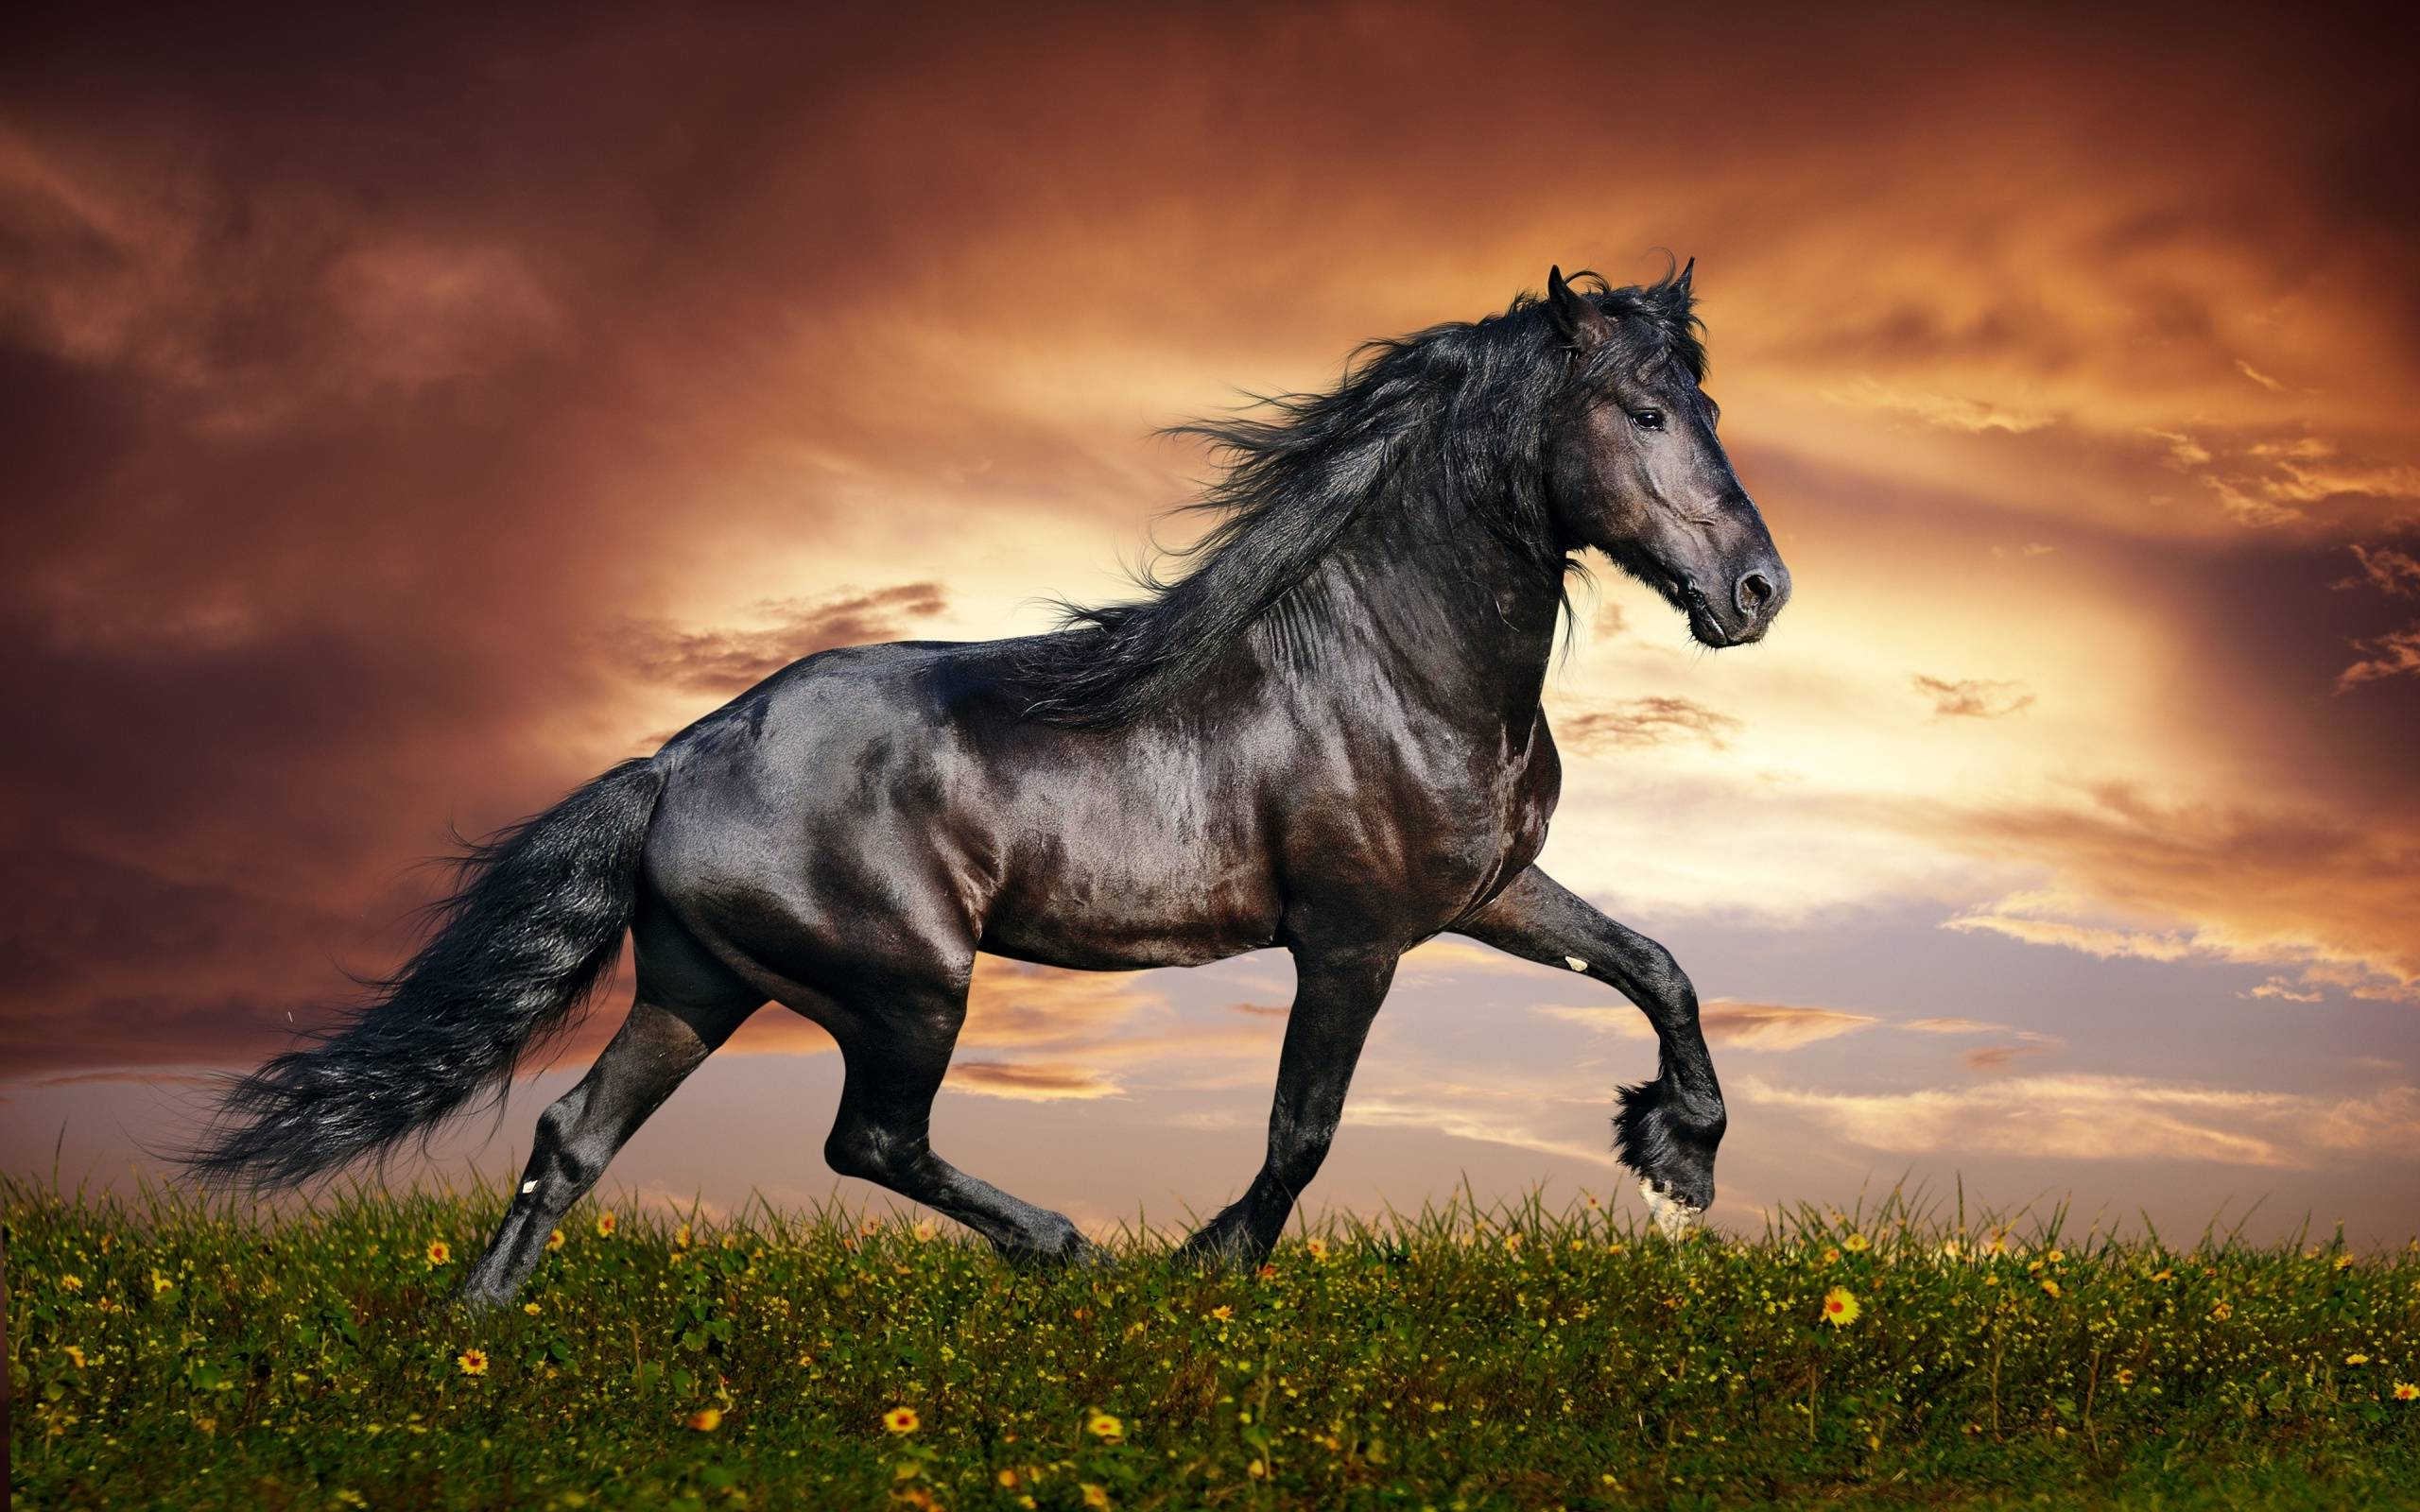 Arabian horse wallpapers wallpaper cave for Window horses